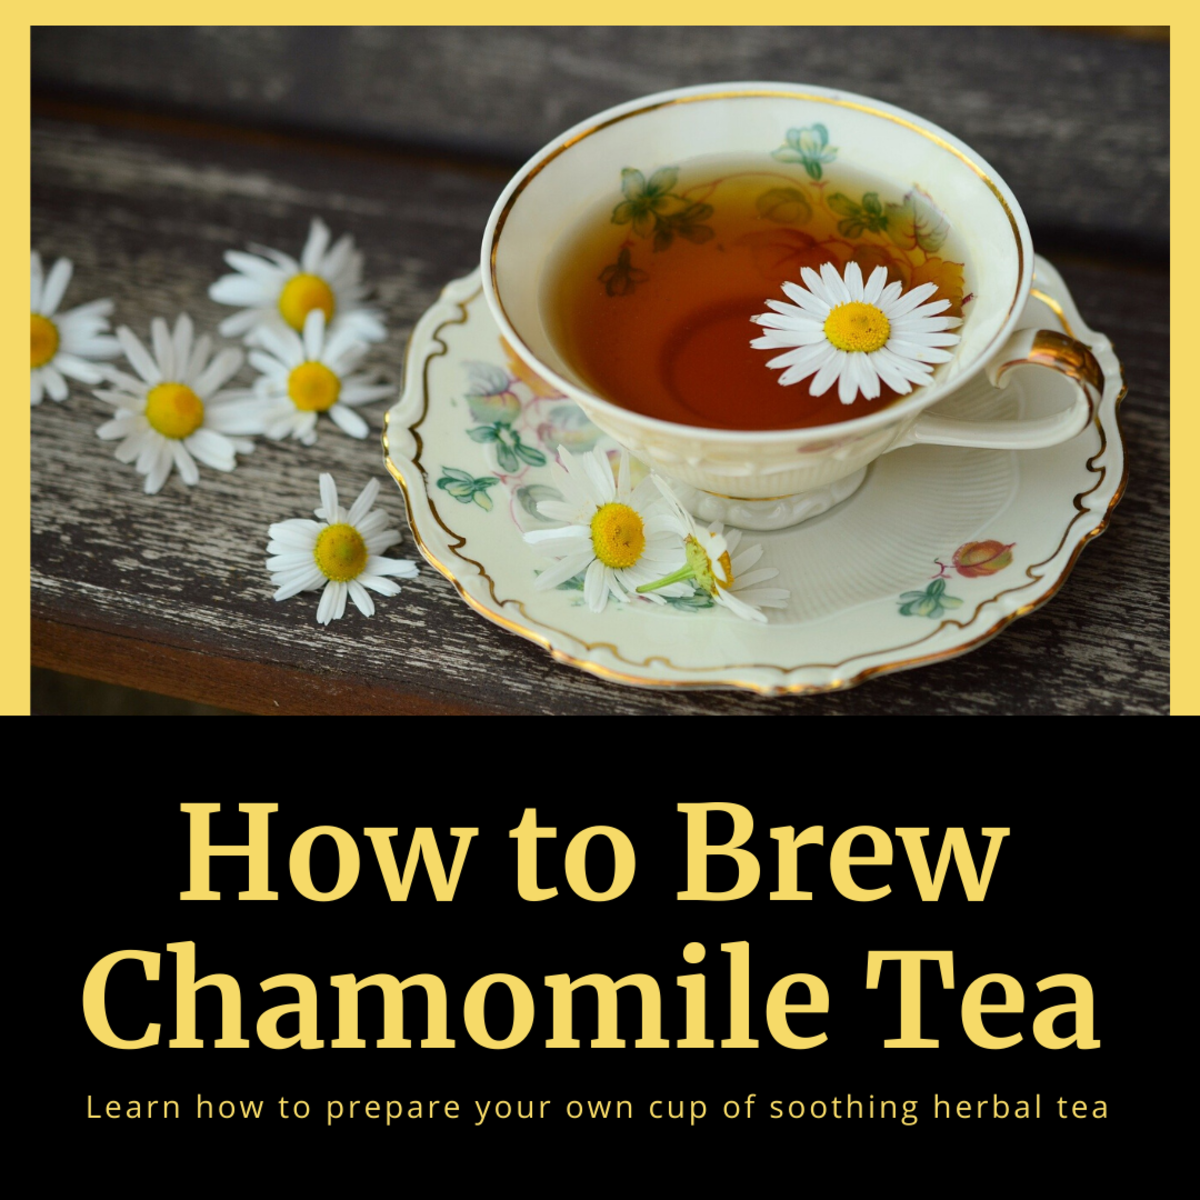 How to Prepare and Brew Chamomile Tea